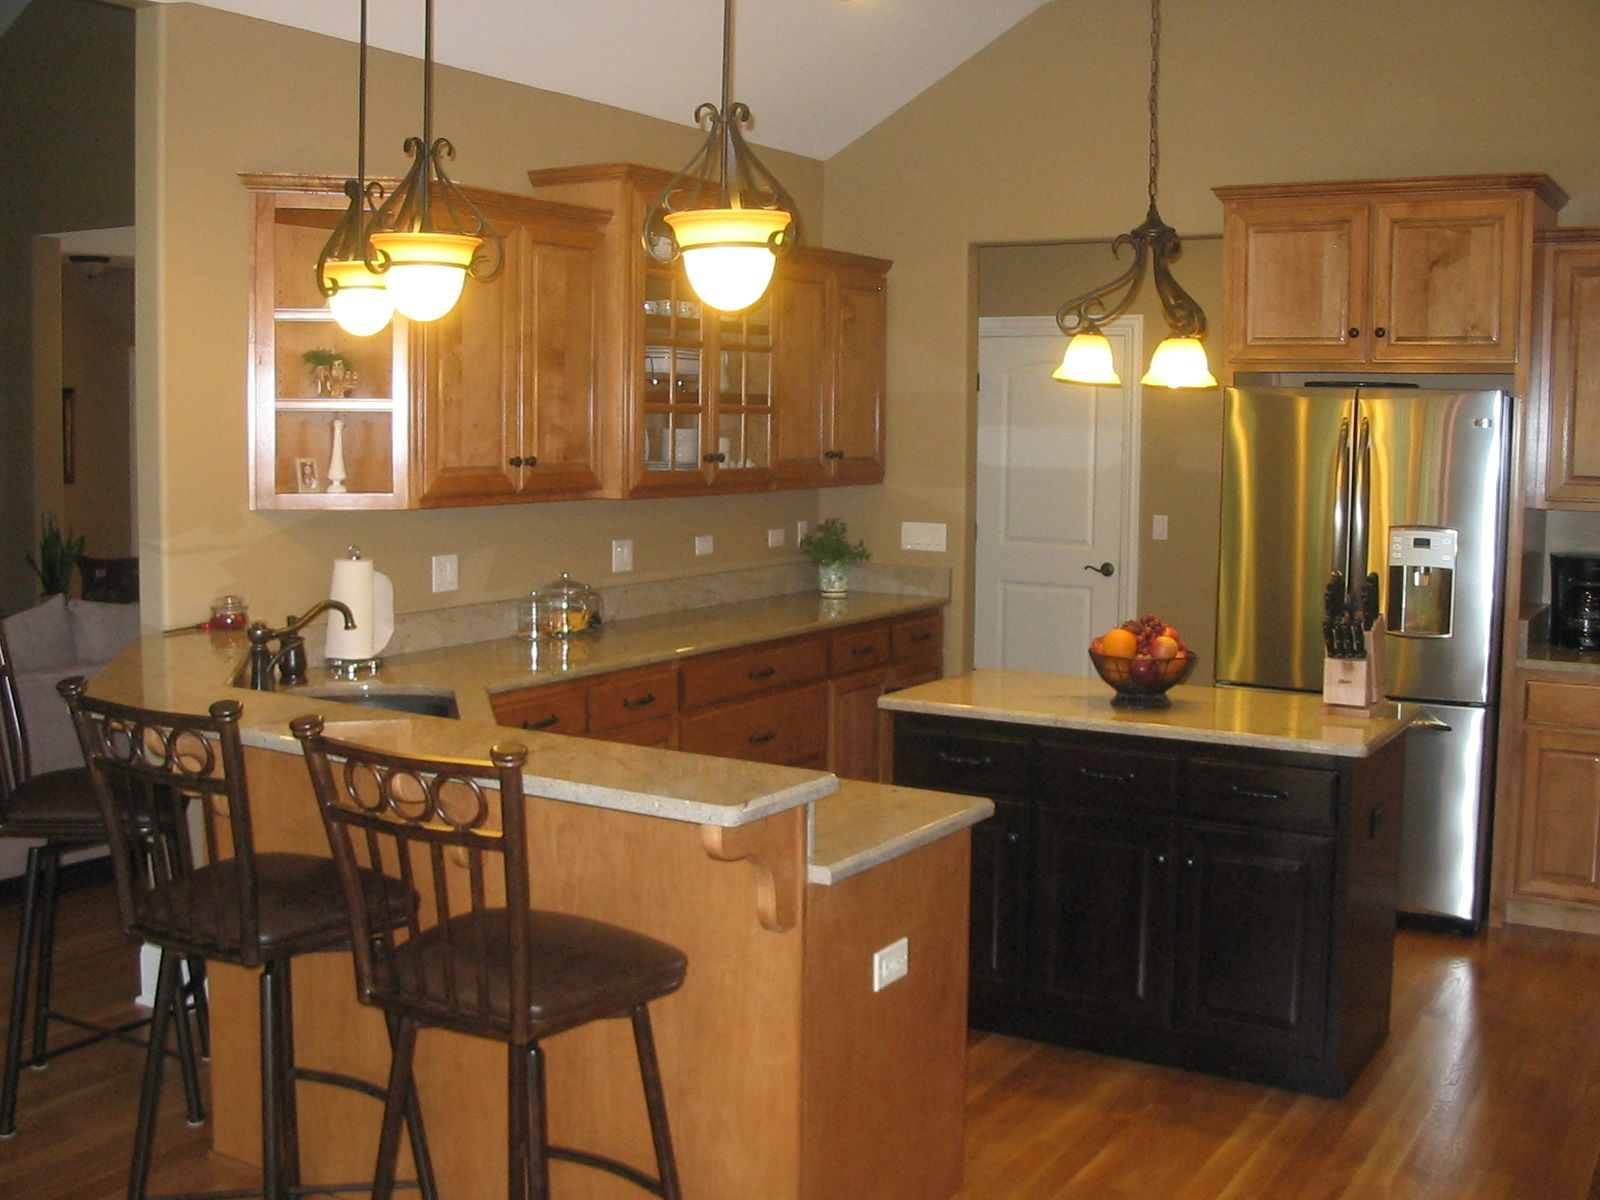 Oak Cabinets Espresso Stained Island Cabinets Light Tan